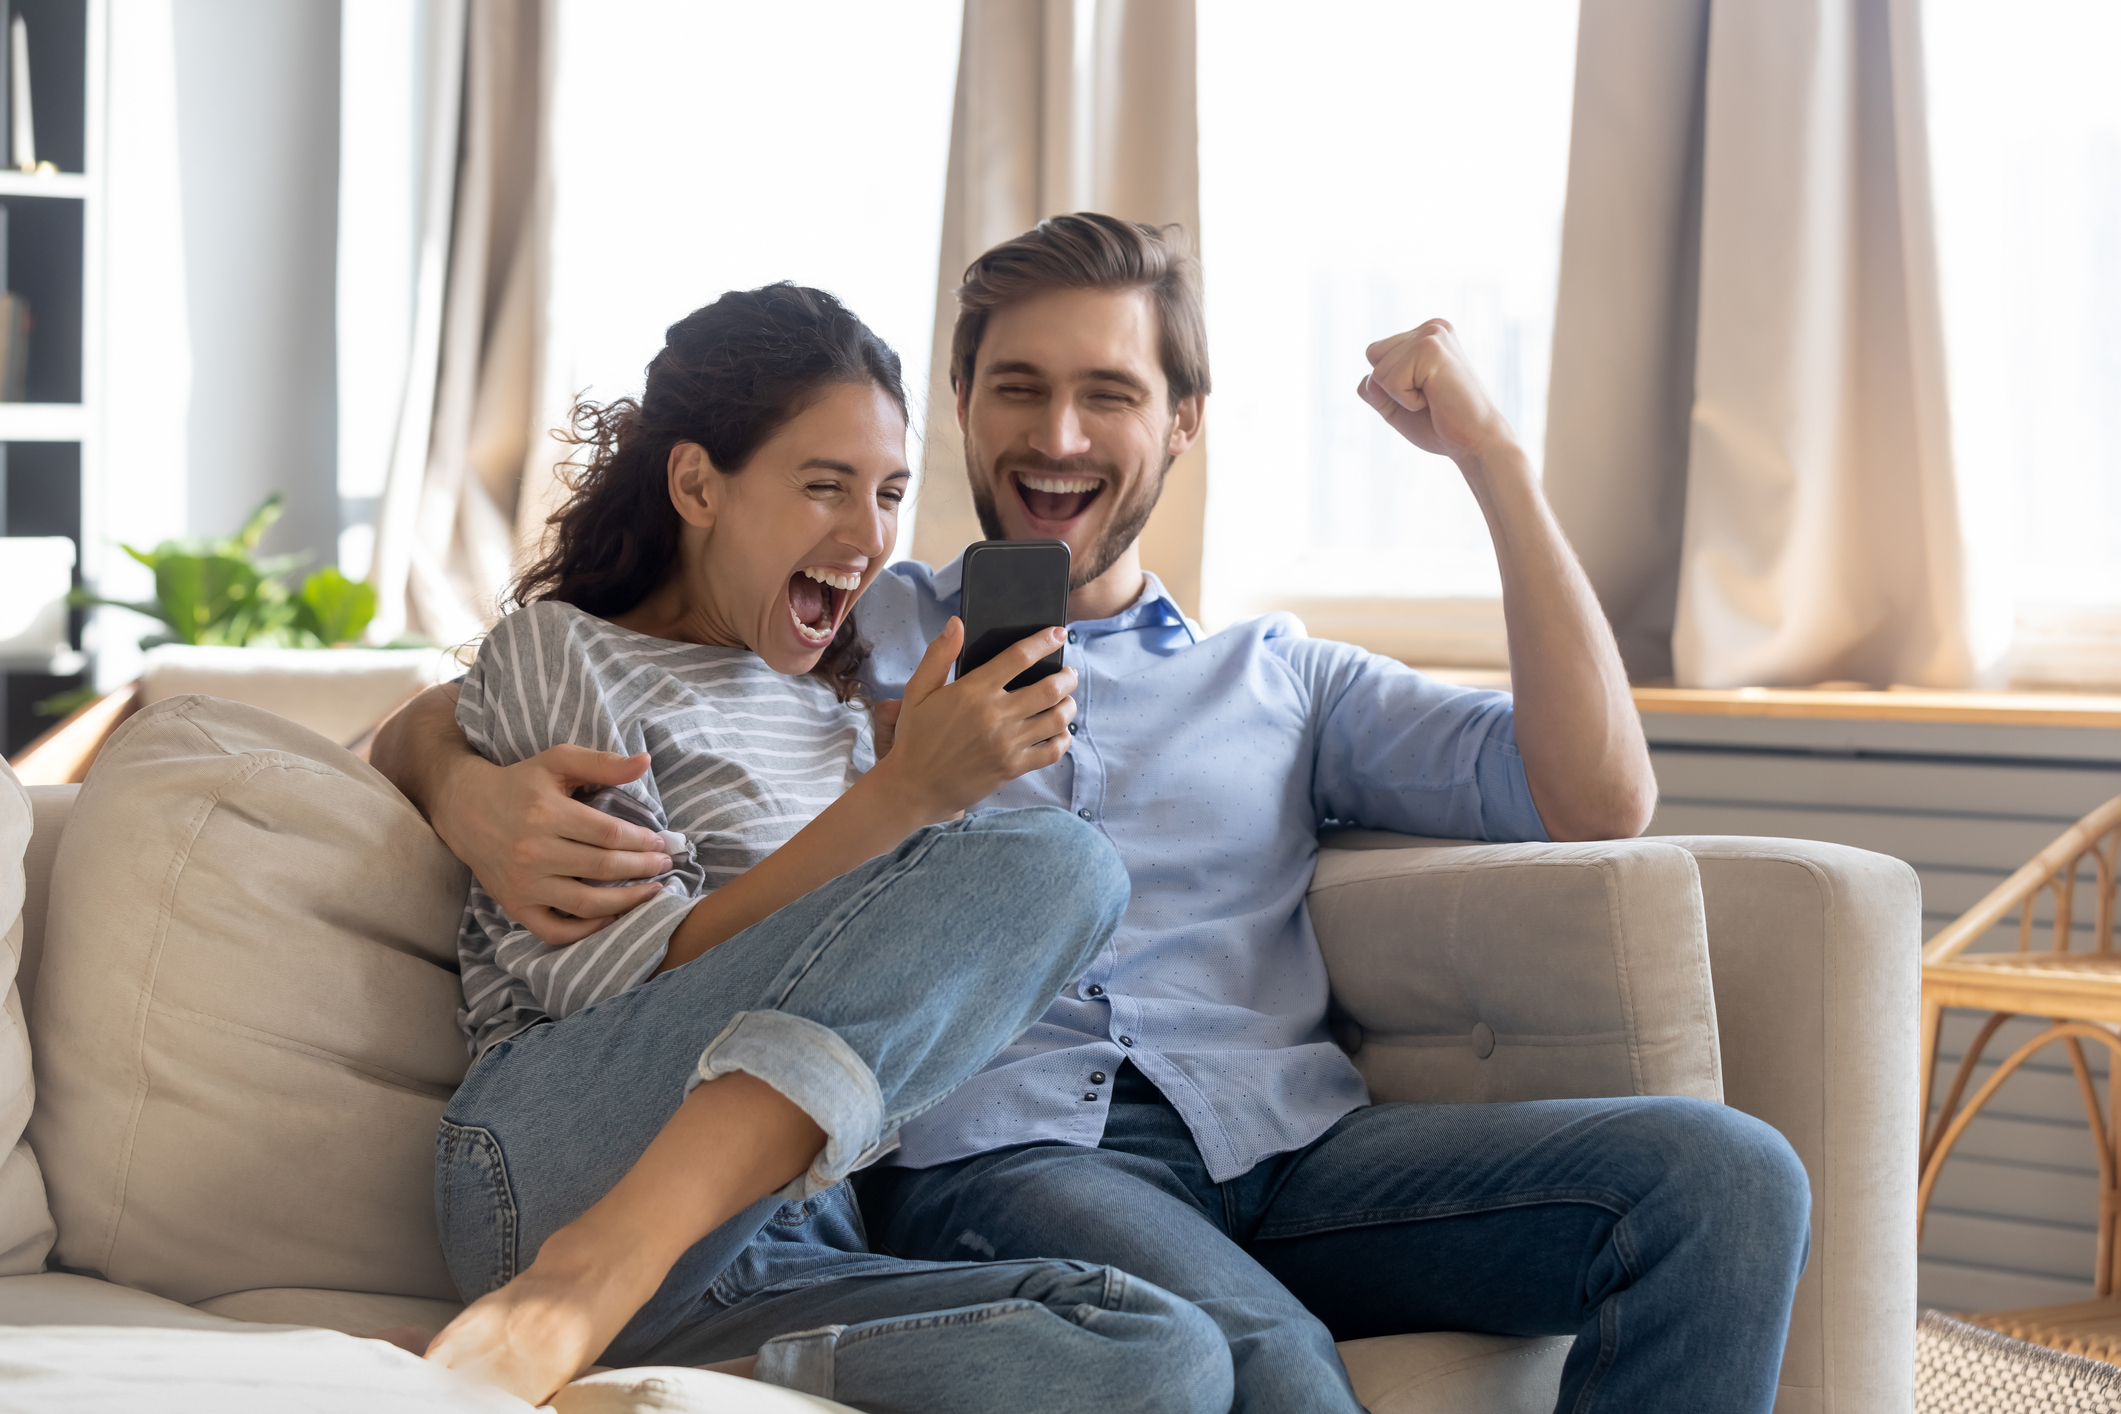 Husband and wife celebrating wife's recovery progress